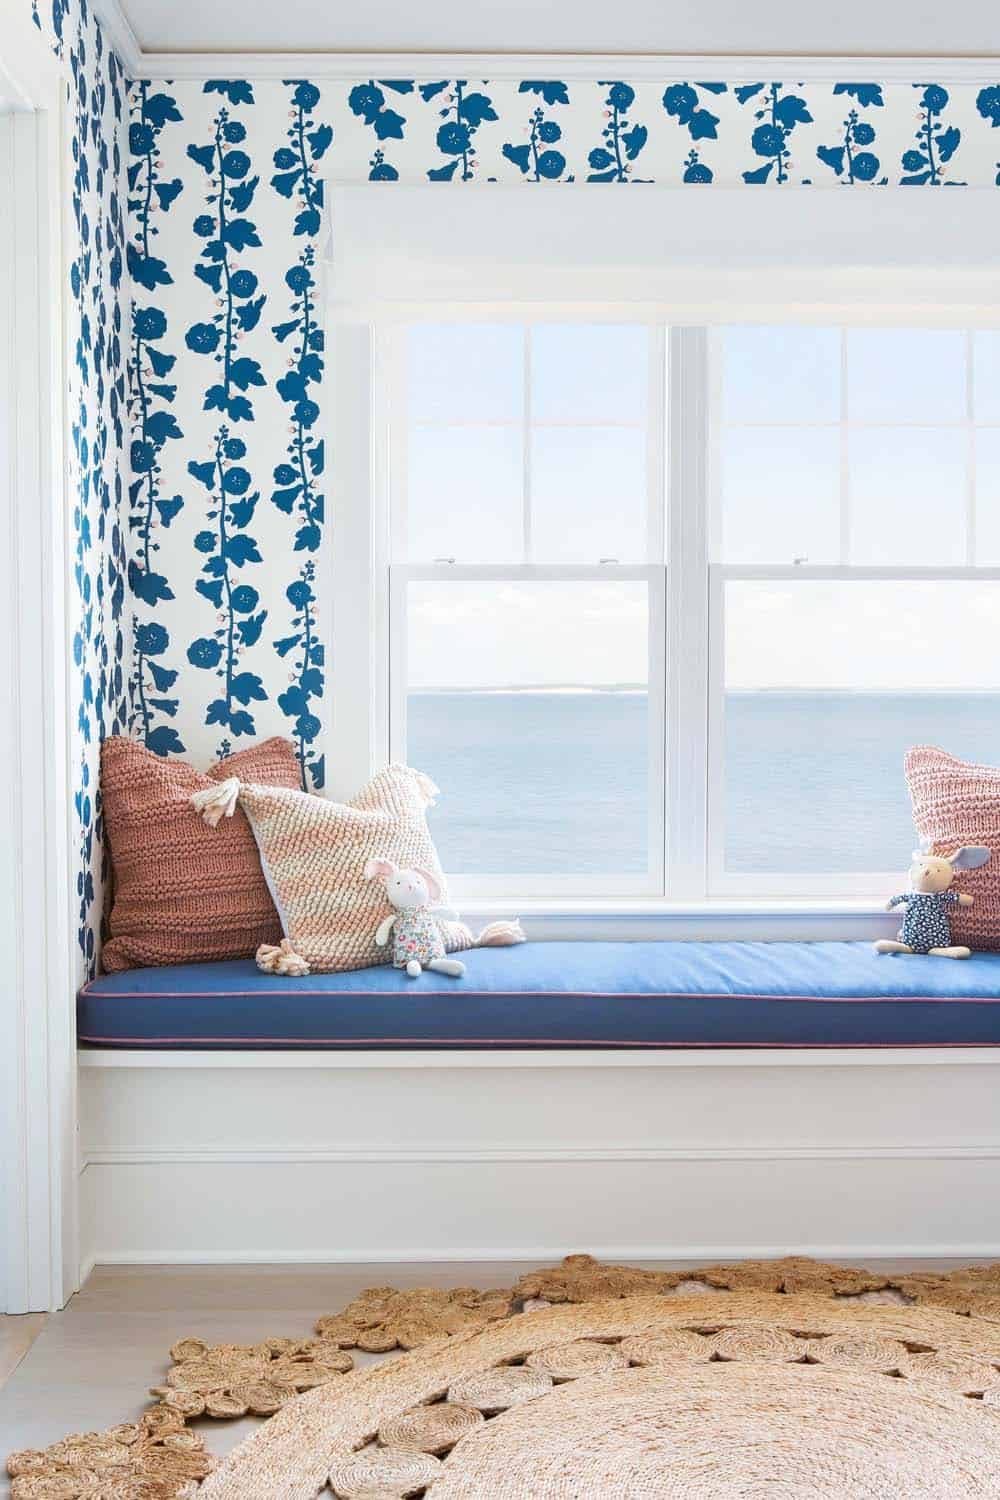 waterfront-beach-style-kids-bedroom-window-seat